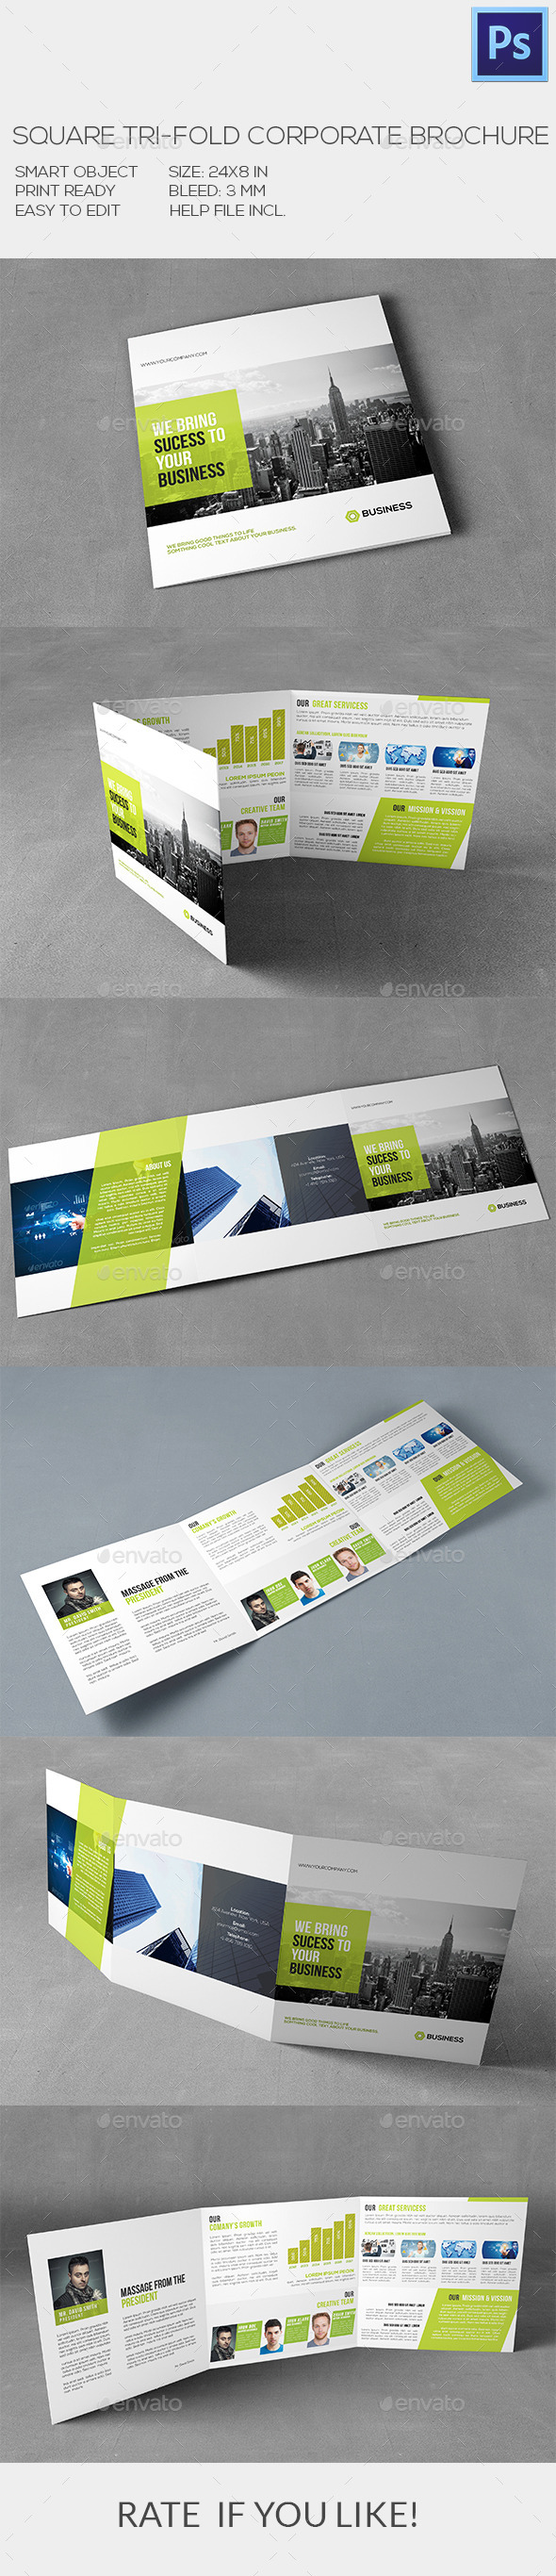 GraphicRiver Square Corporate Brochure 10050694